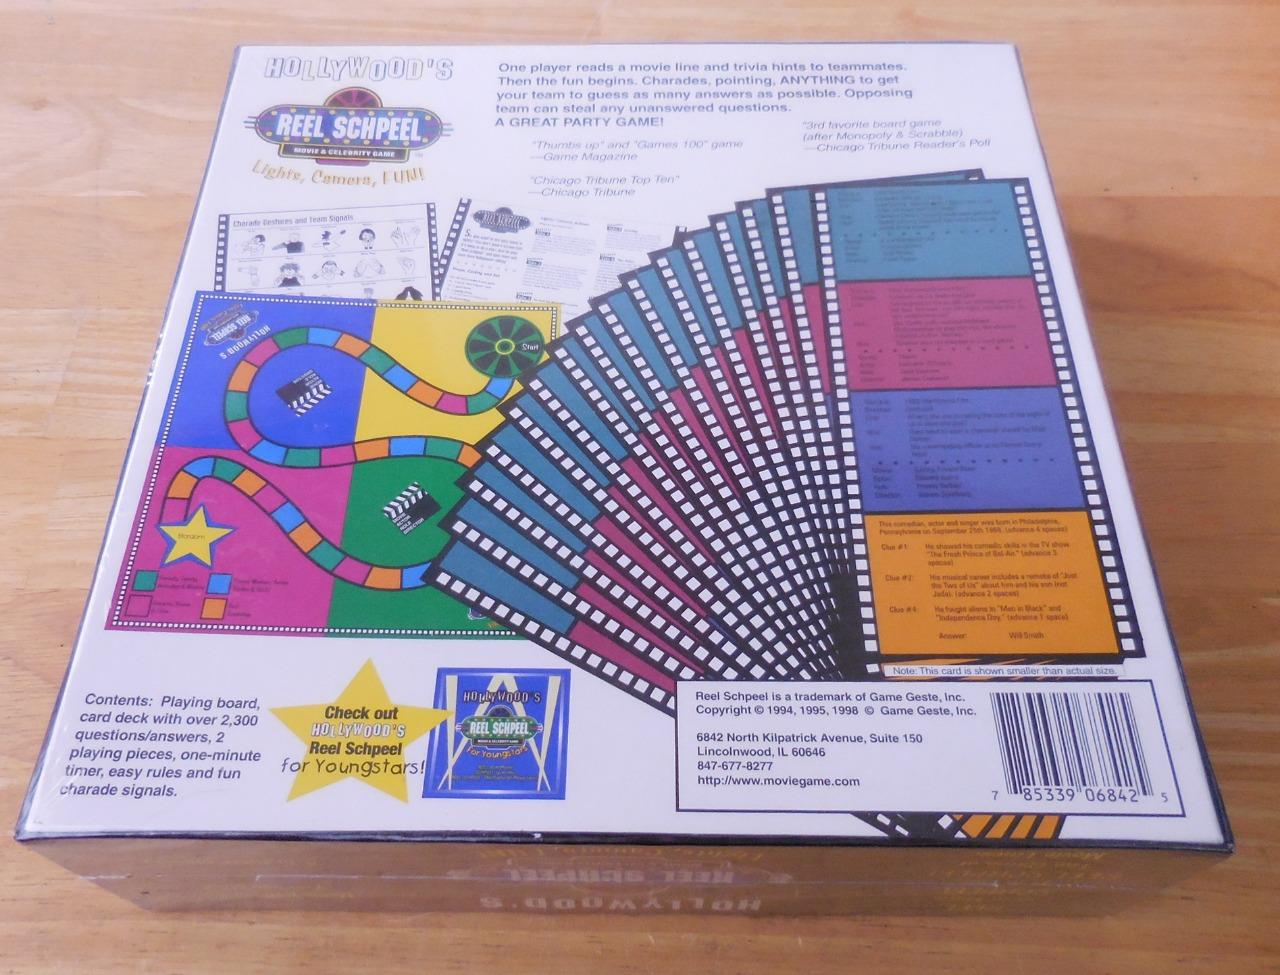 Details about Hollywood's REEL SCHPEEL Movie Lines Board Game by Game Geste  - New/Sealed